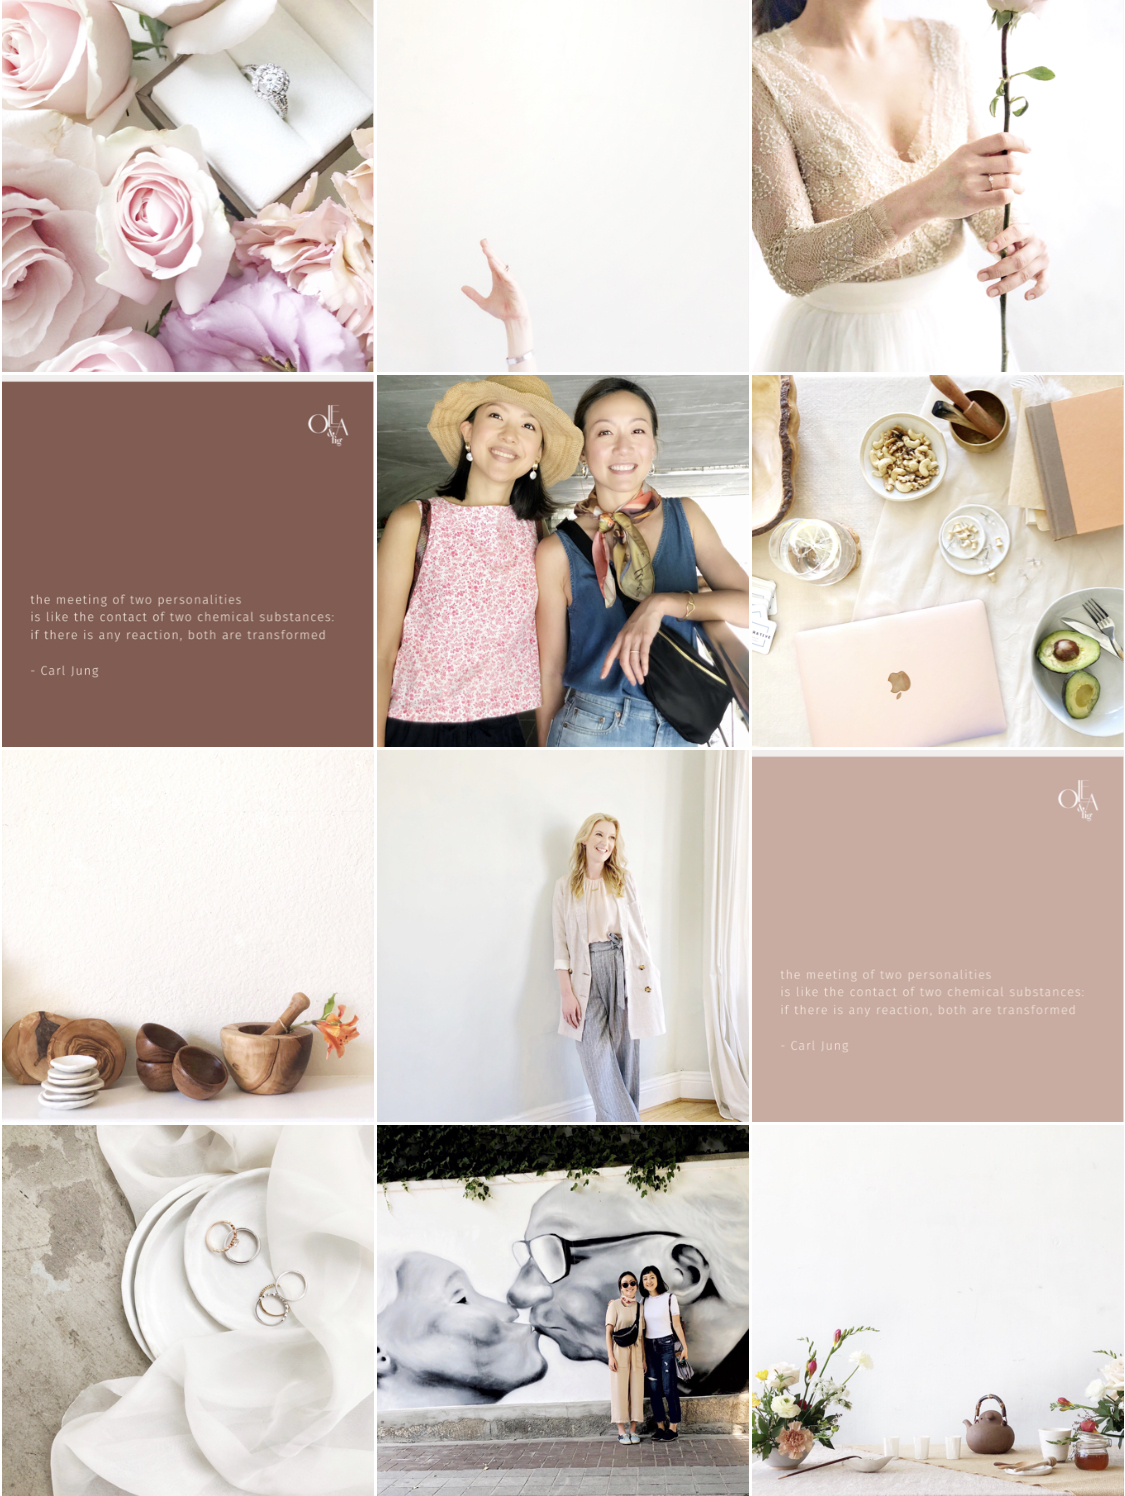 instagram brand olea and fig